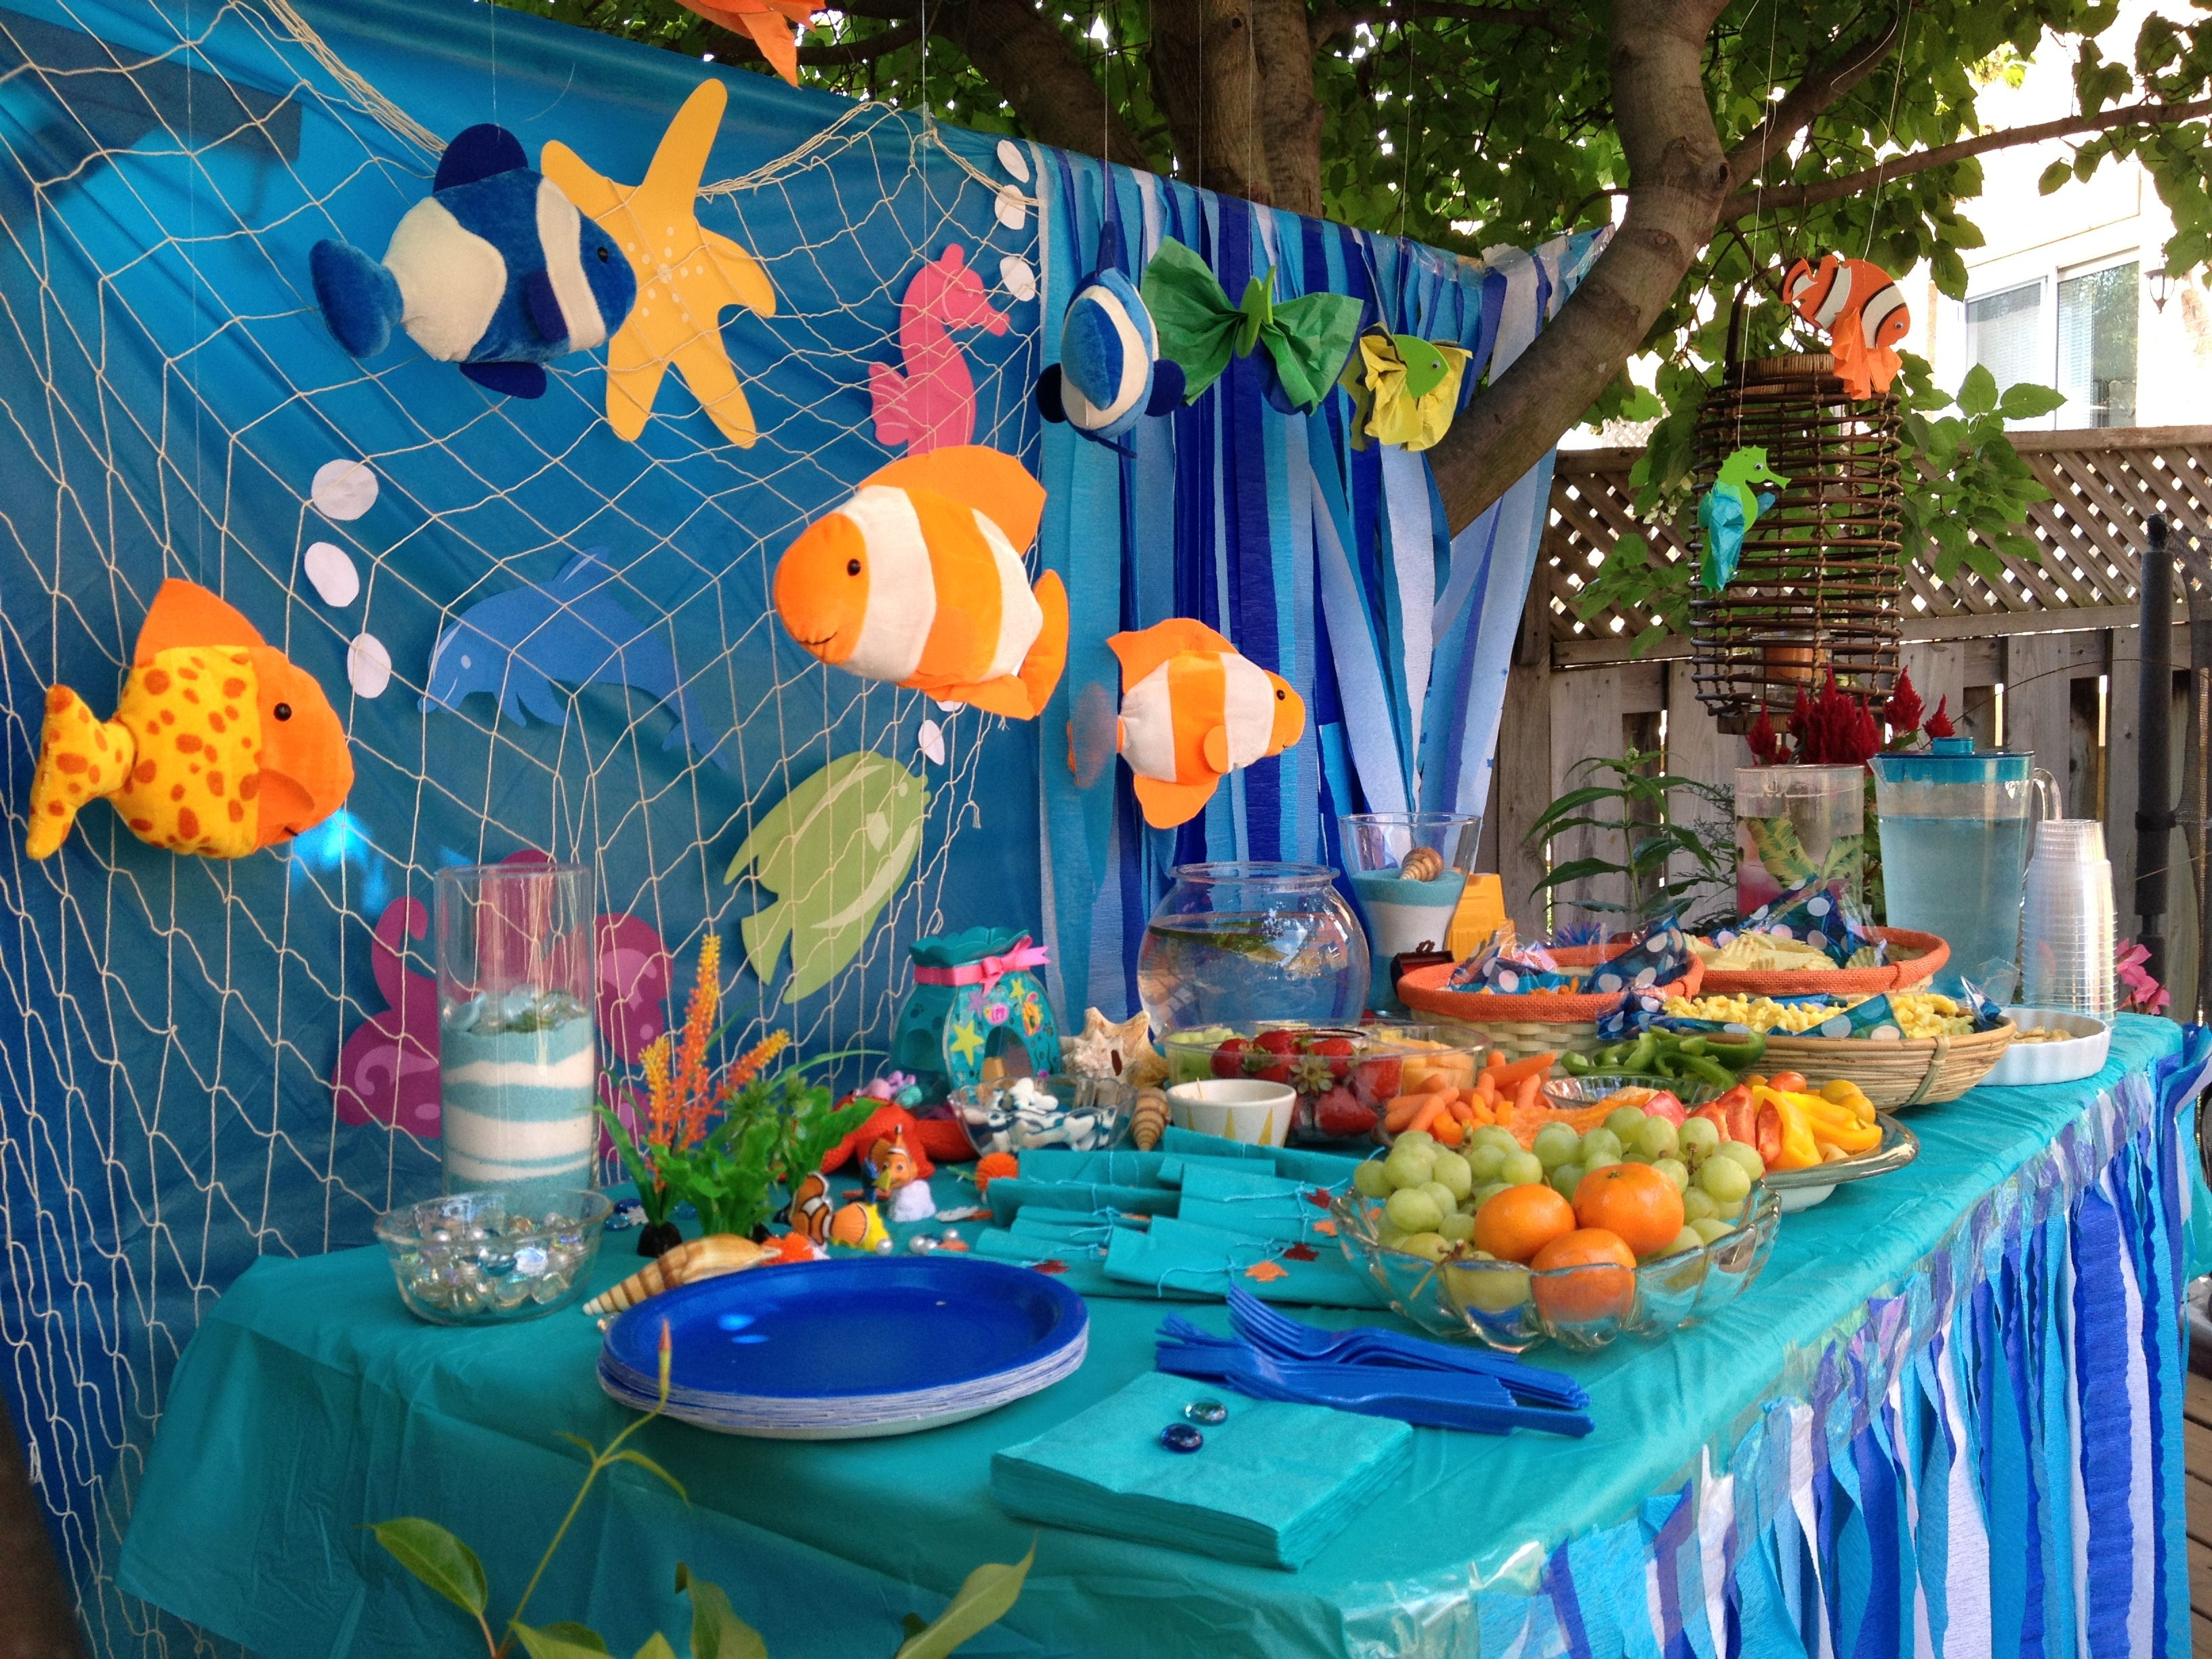 Decor For Under The Sea Theme Featuring Items Doug At The